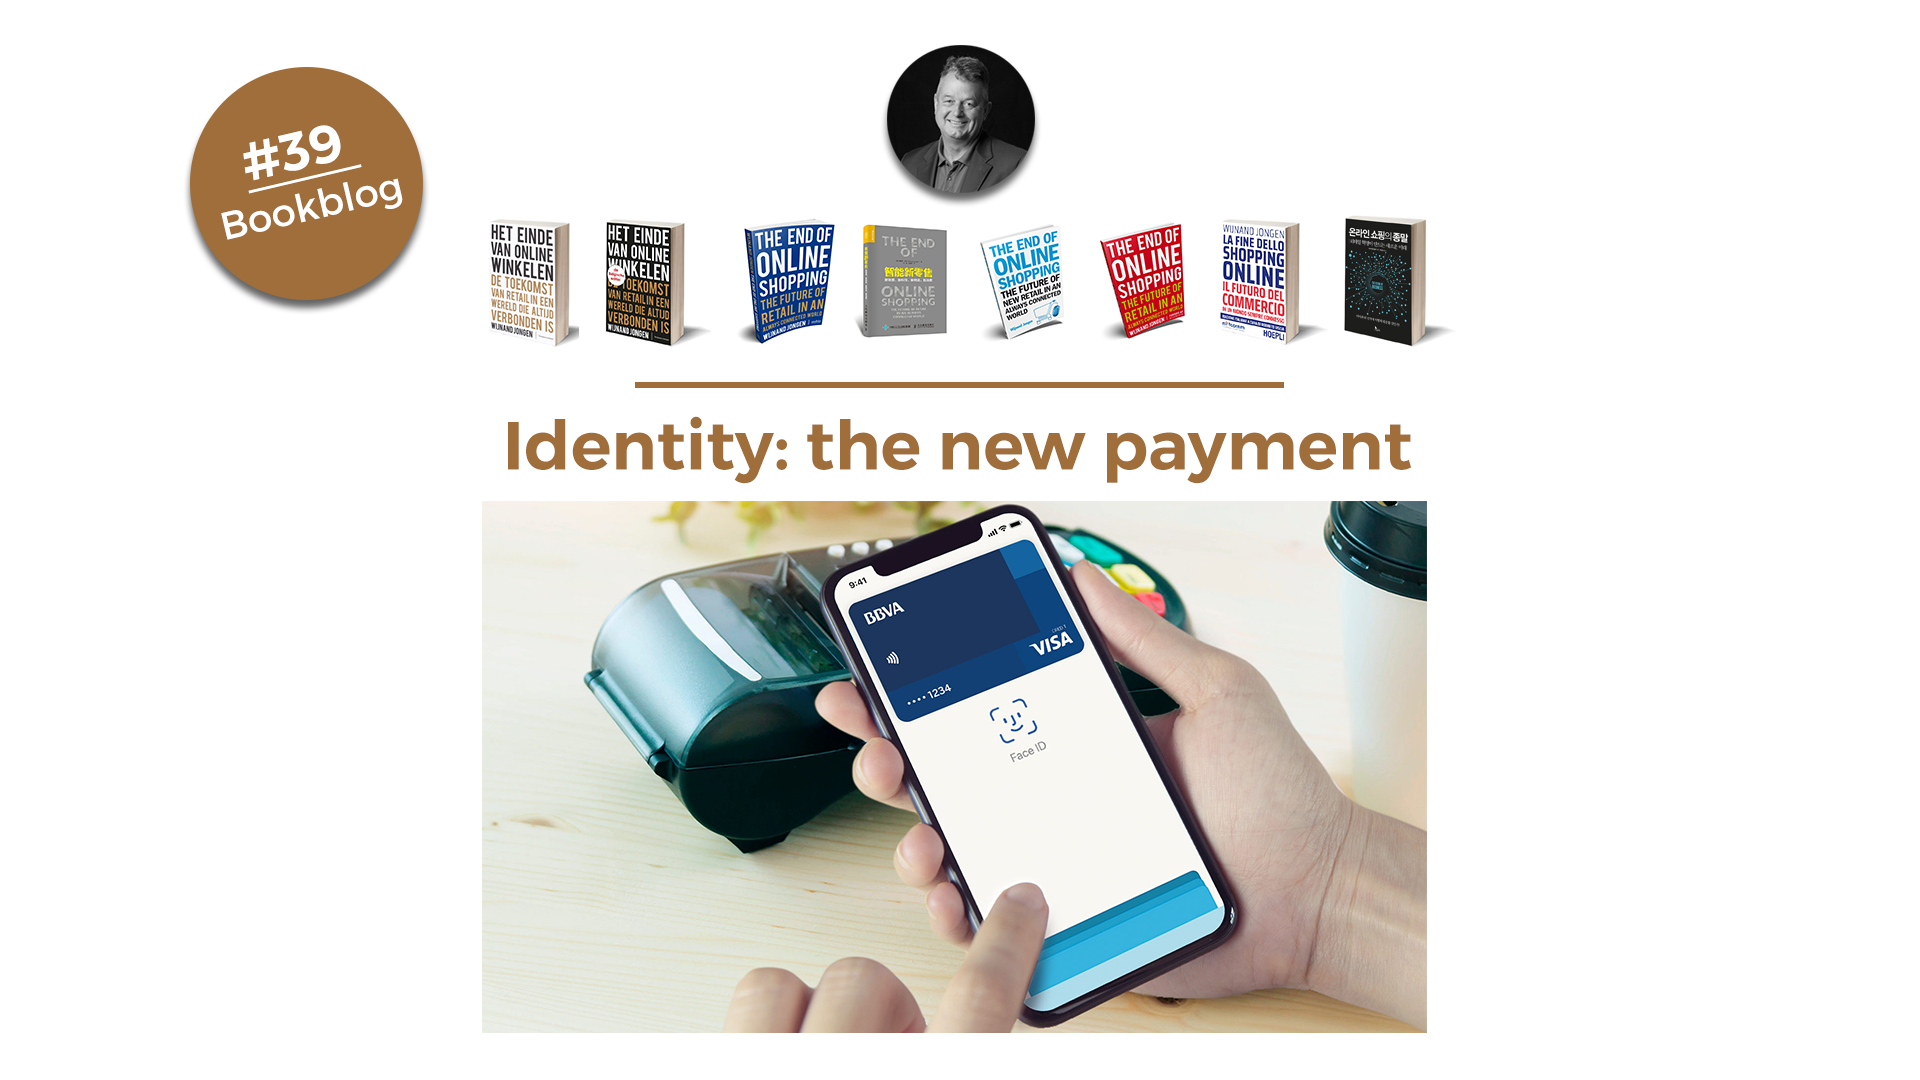 Identity: the new payment